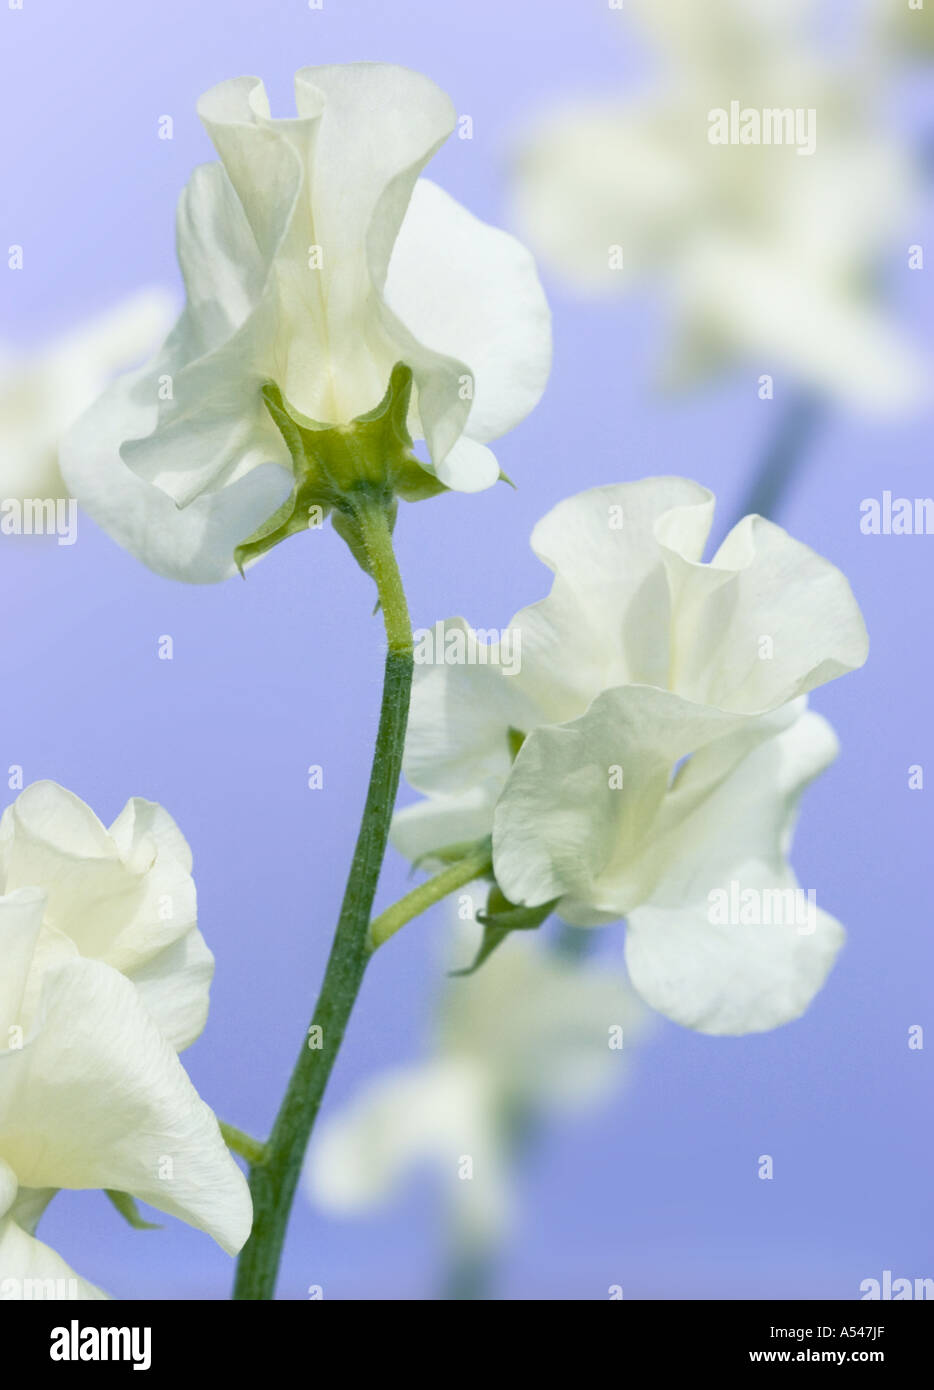 A Close Up Studio Shot Of White Sweet Pea Flowers On Mauve Stock